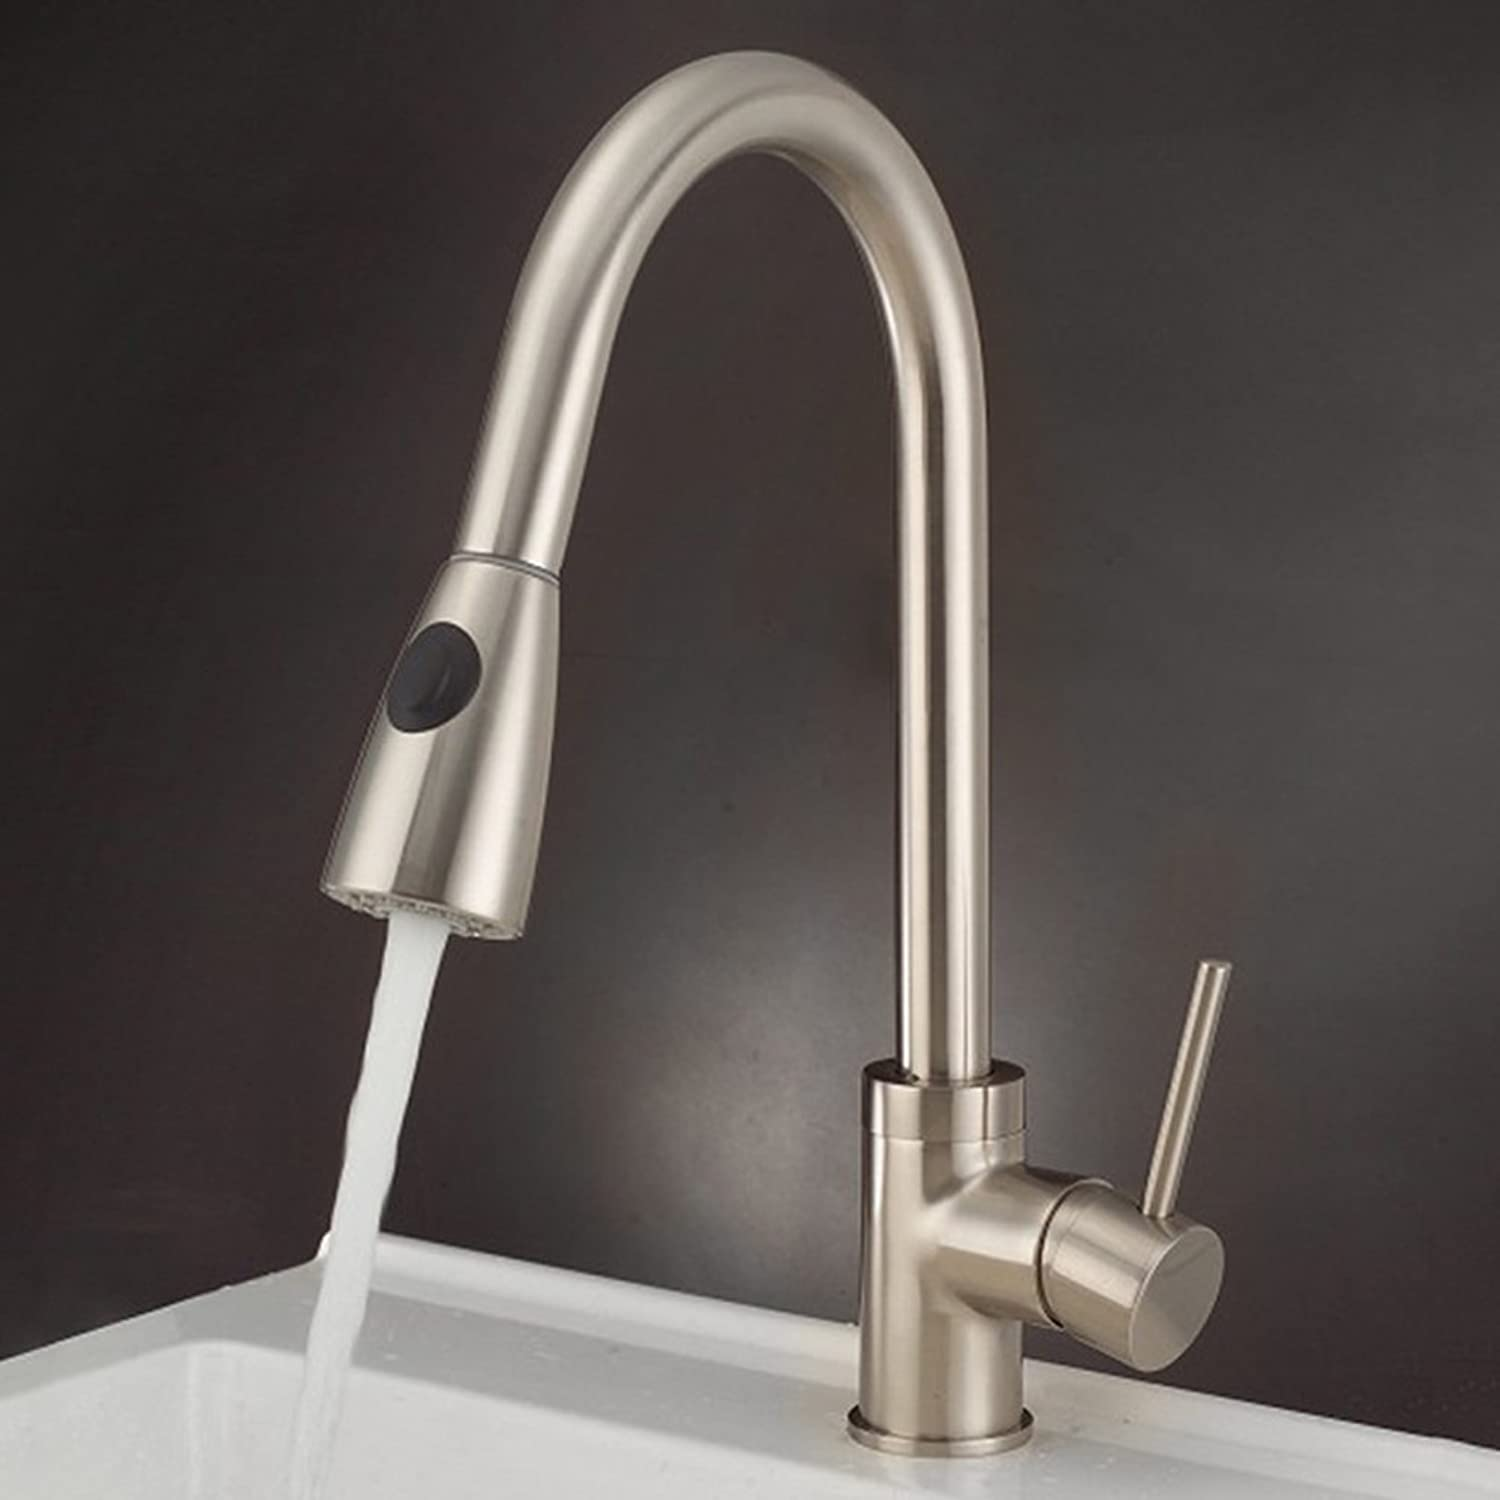 Modern Kitchen Sink Mixer Tap ,Single Lever Kitchen Tap Hot And Cold Water redation UK Standard Fittings Quality Warranty Provided